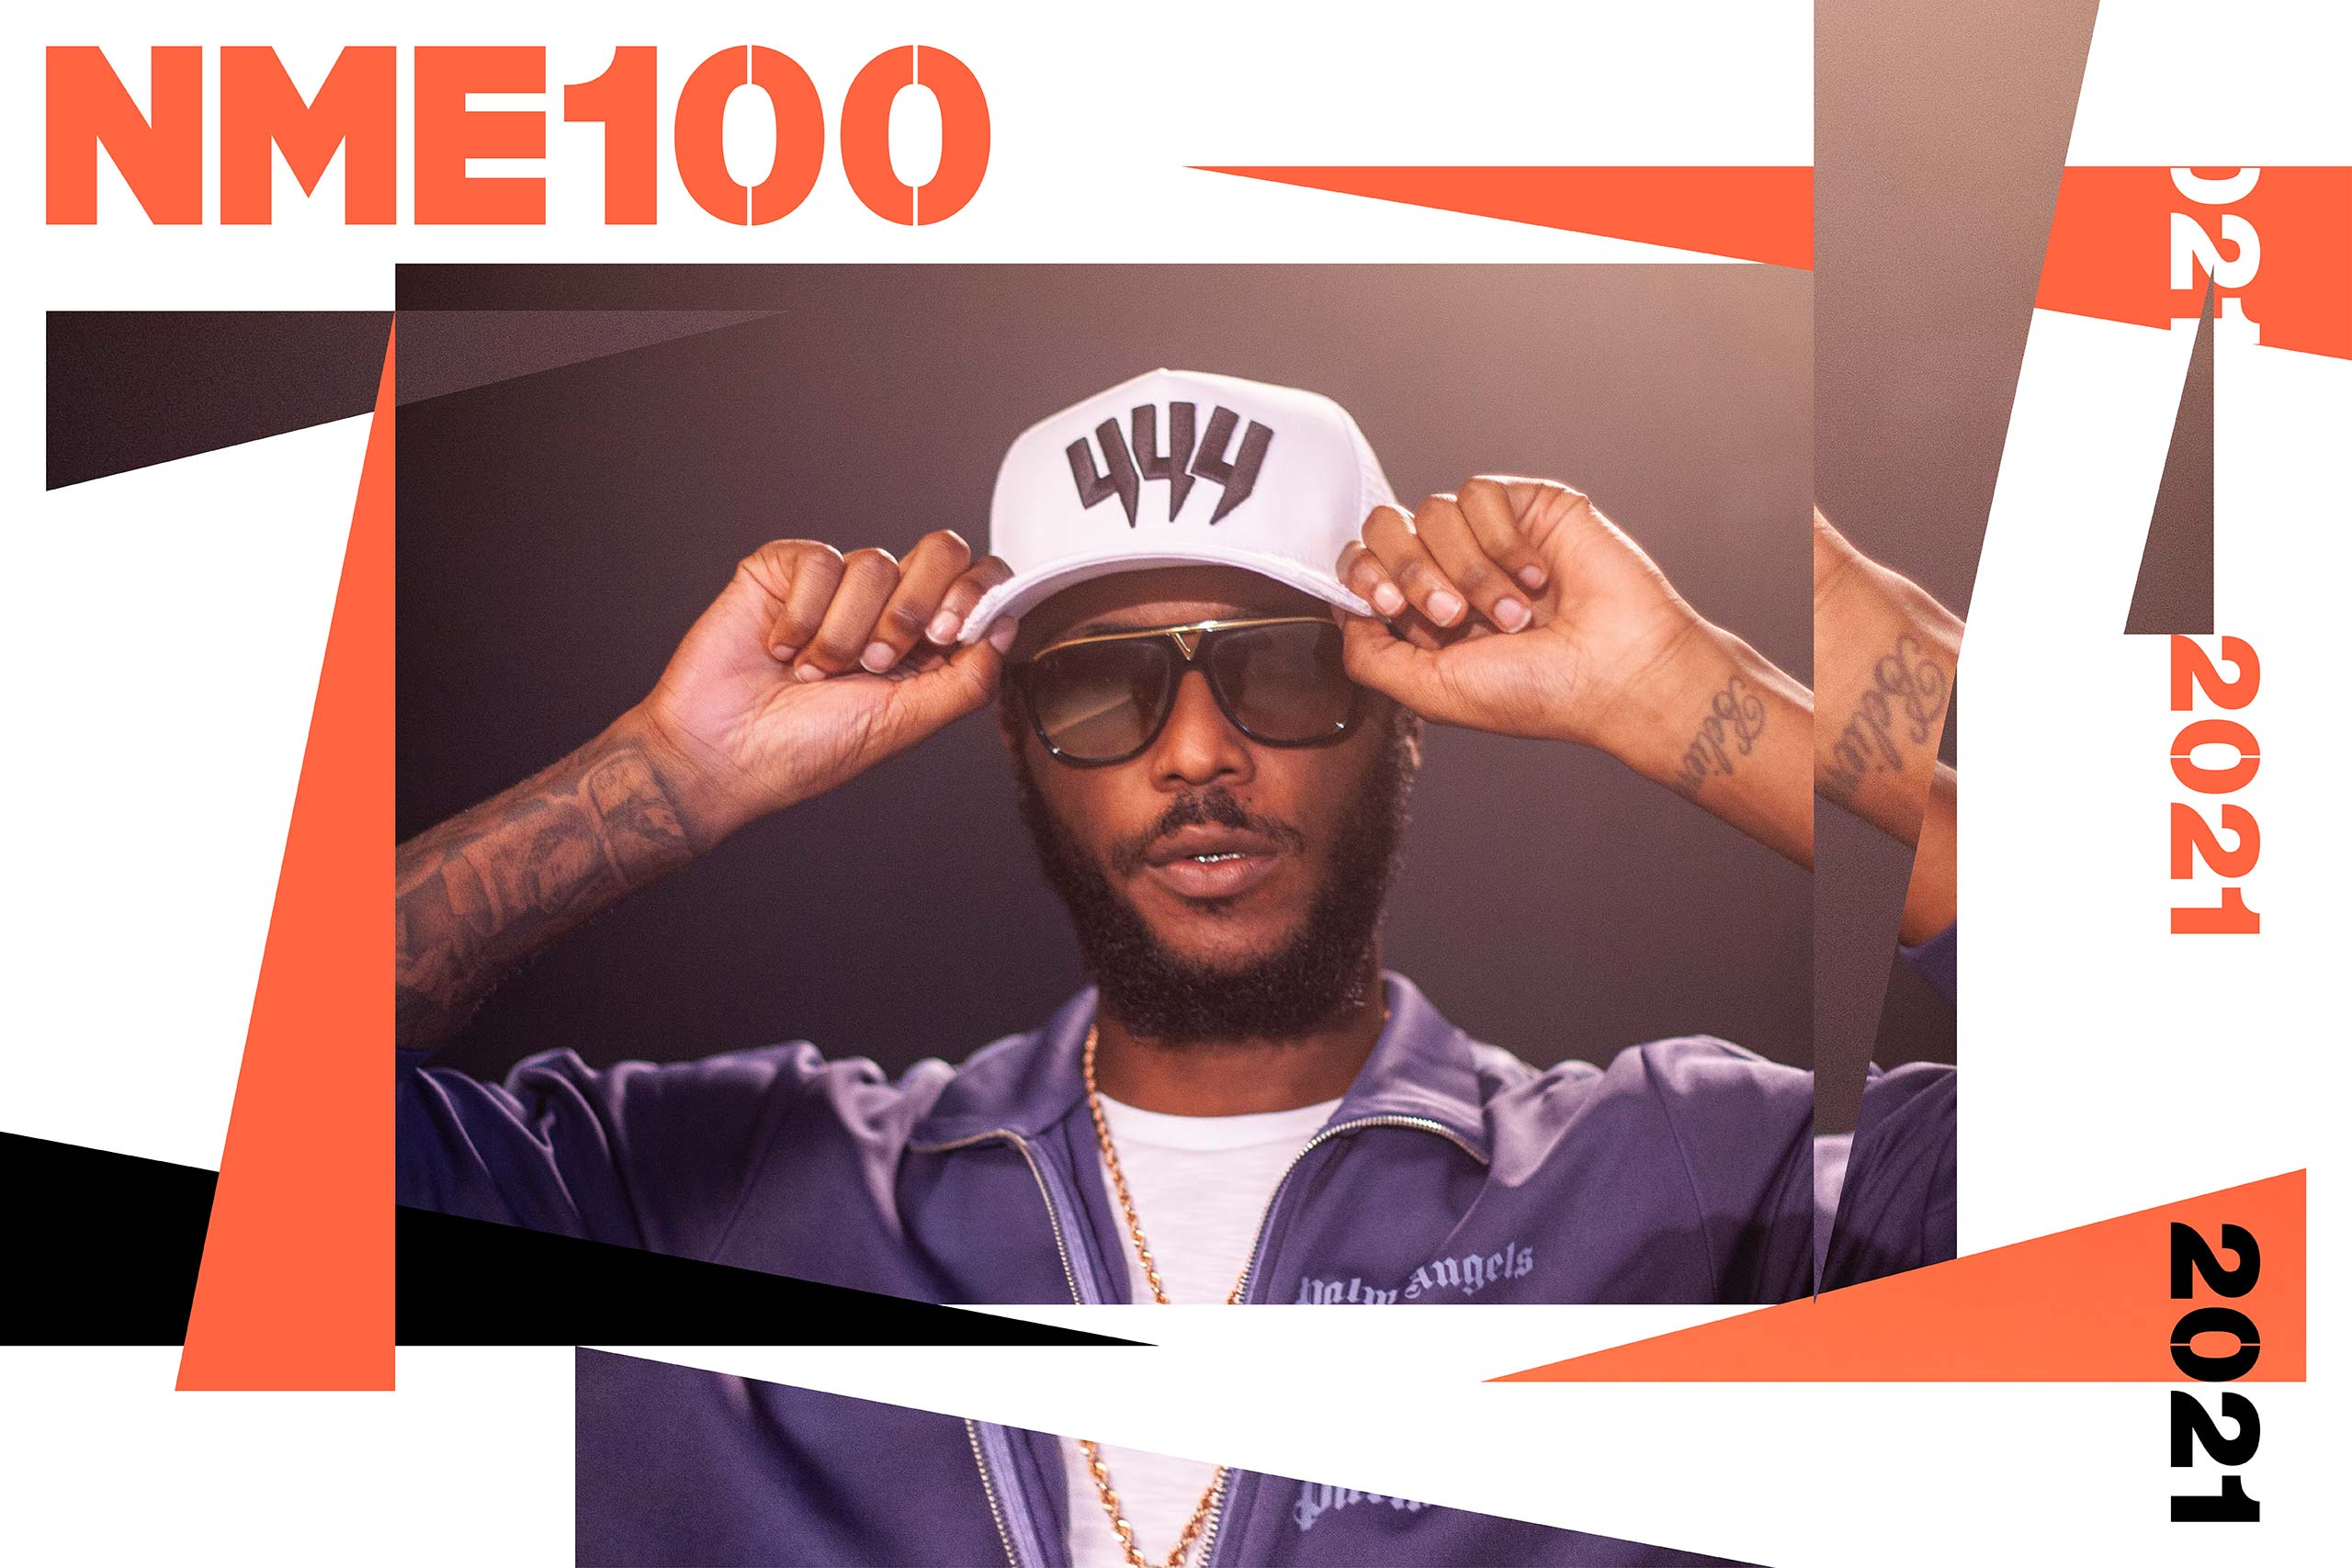 NME 100 frosty